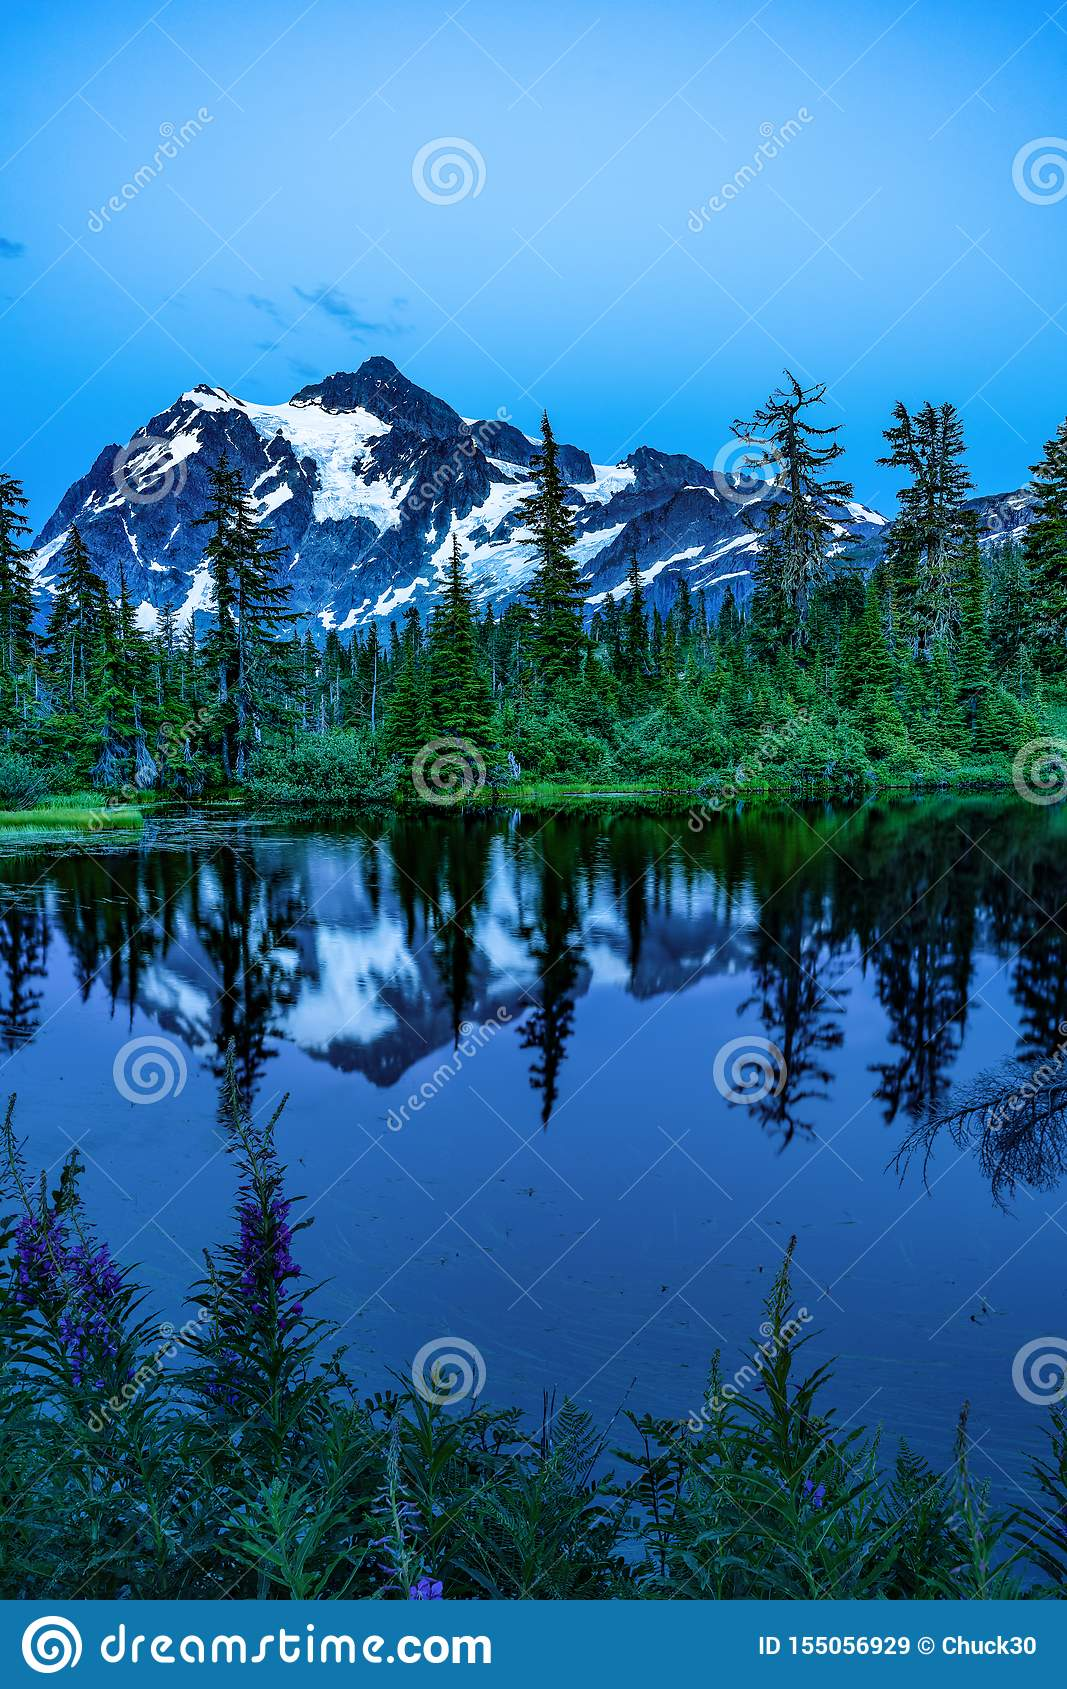 MT BAKER NATIONAL FOREST WA STATE